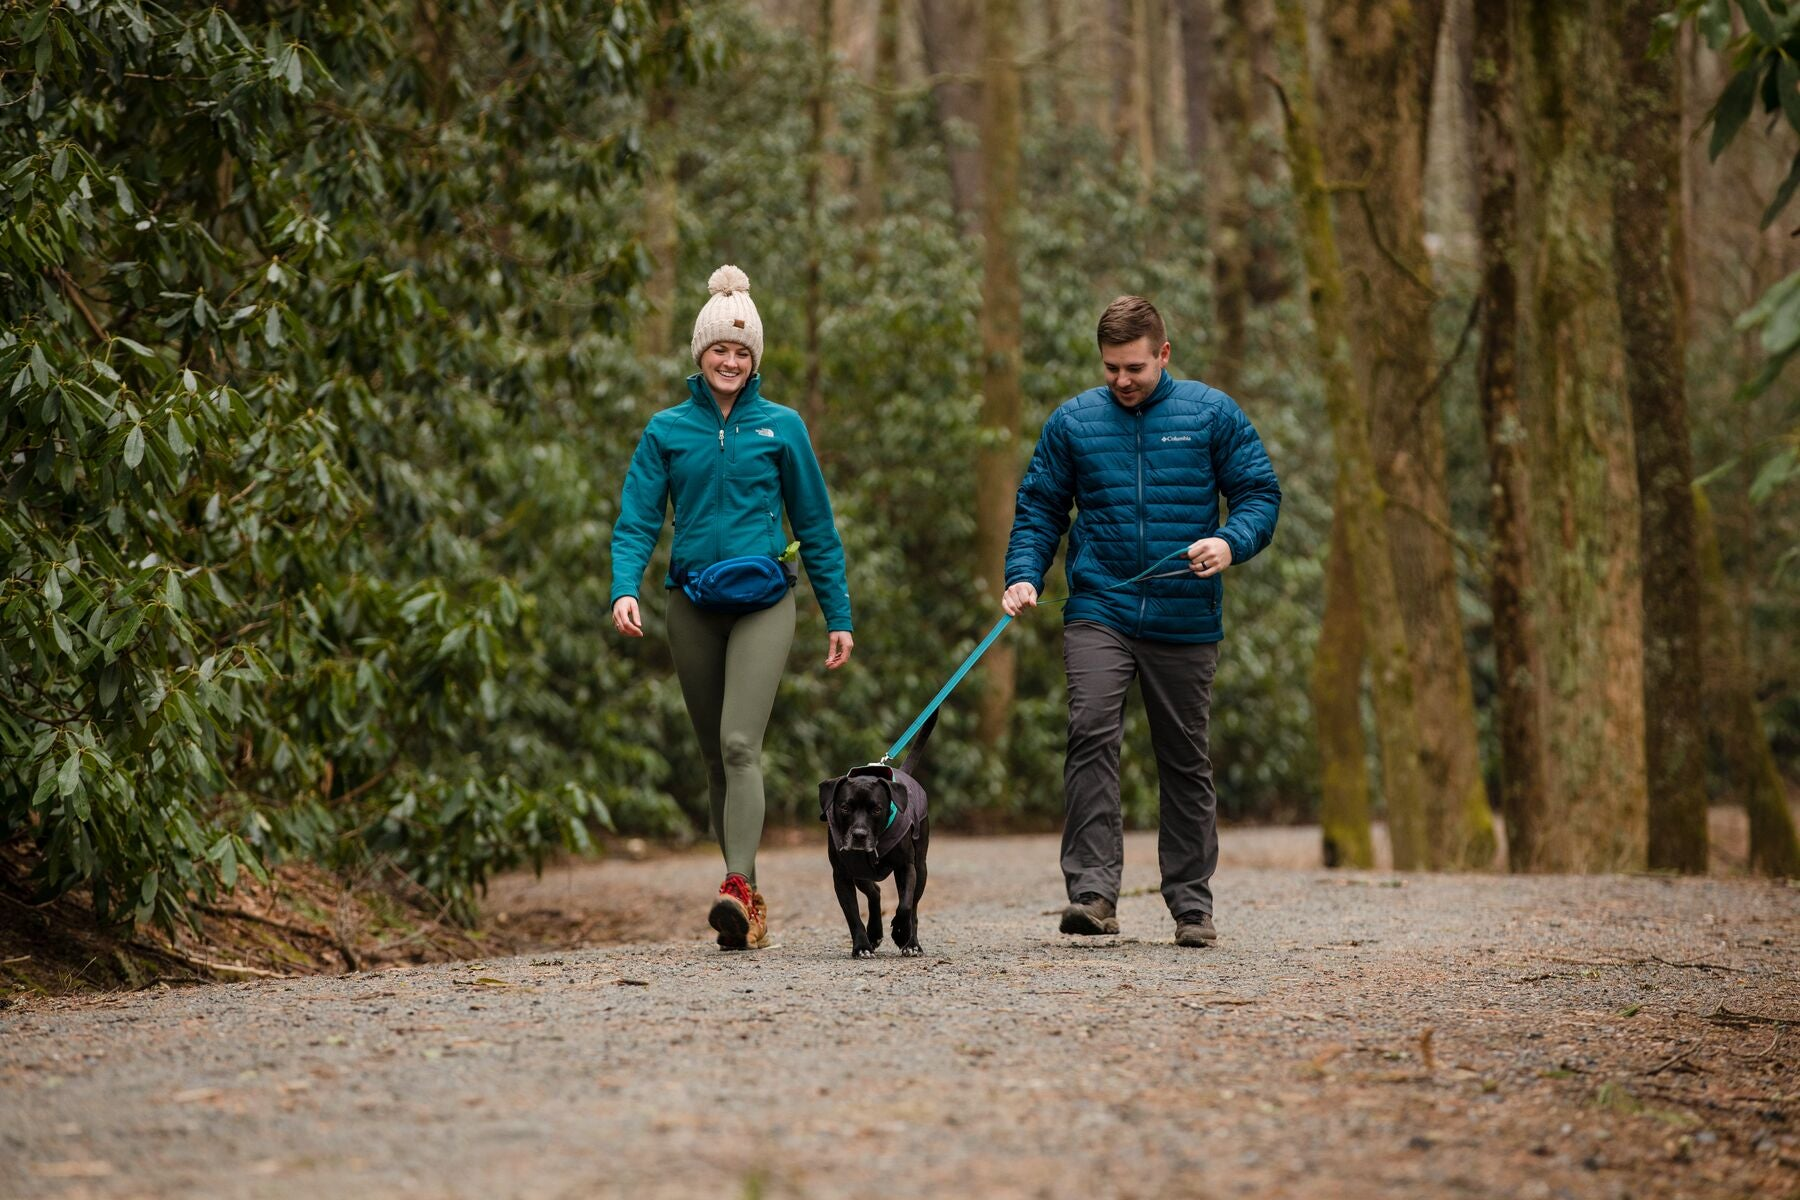 Woman wearing home trail hip pack walks with man and dog in a park.